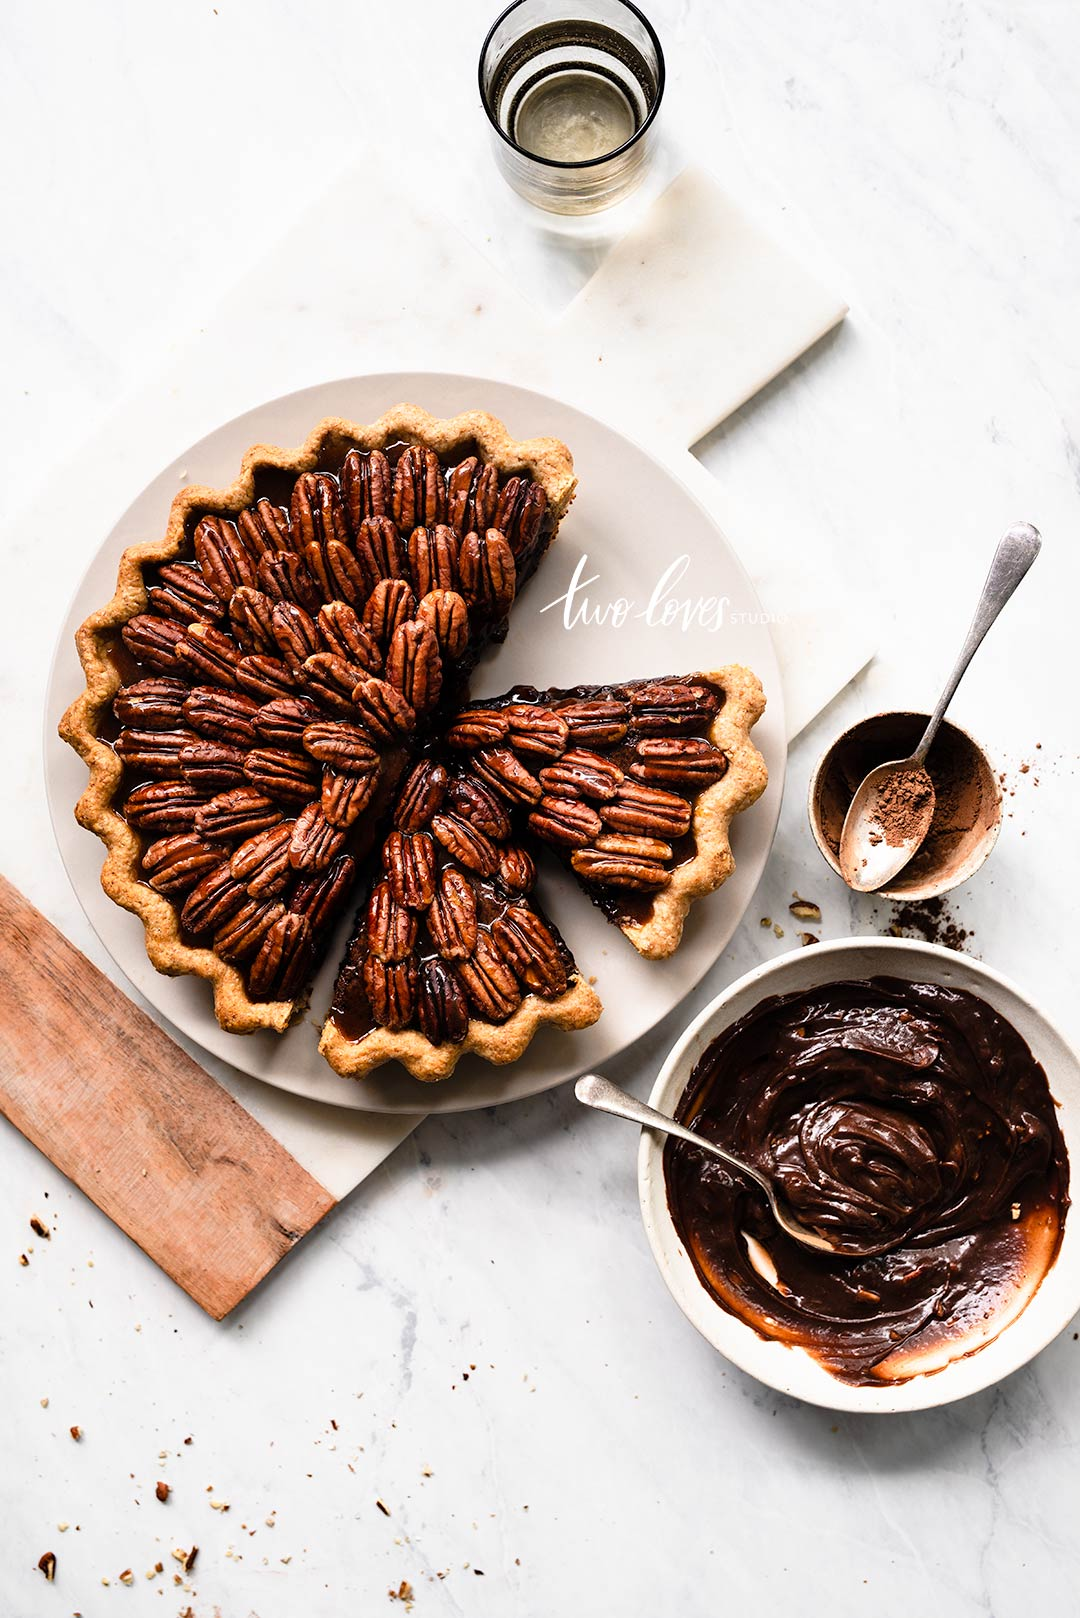 A pecan pie cut into slices on a white plate